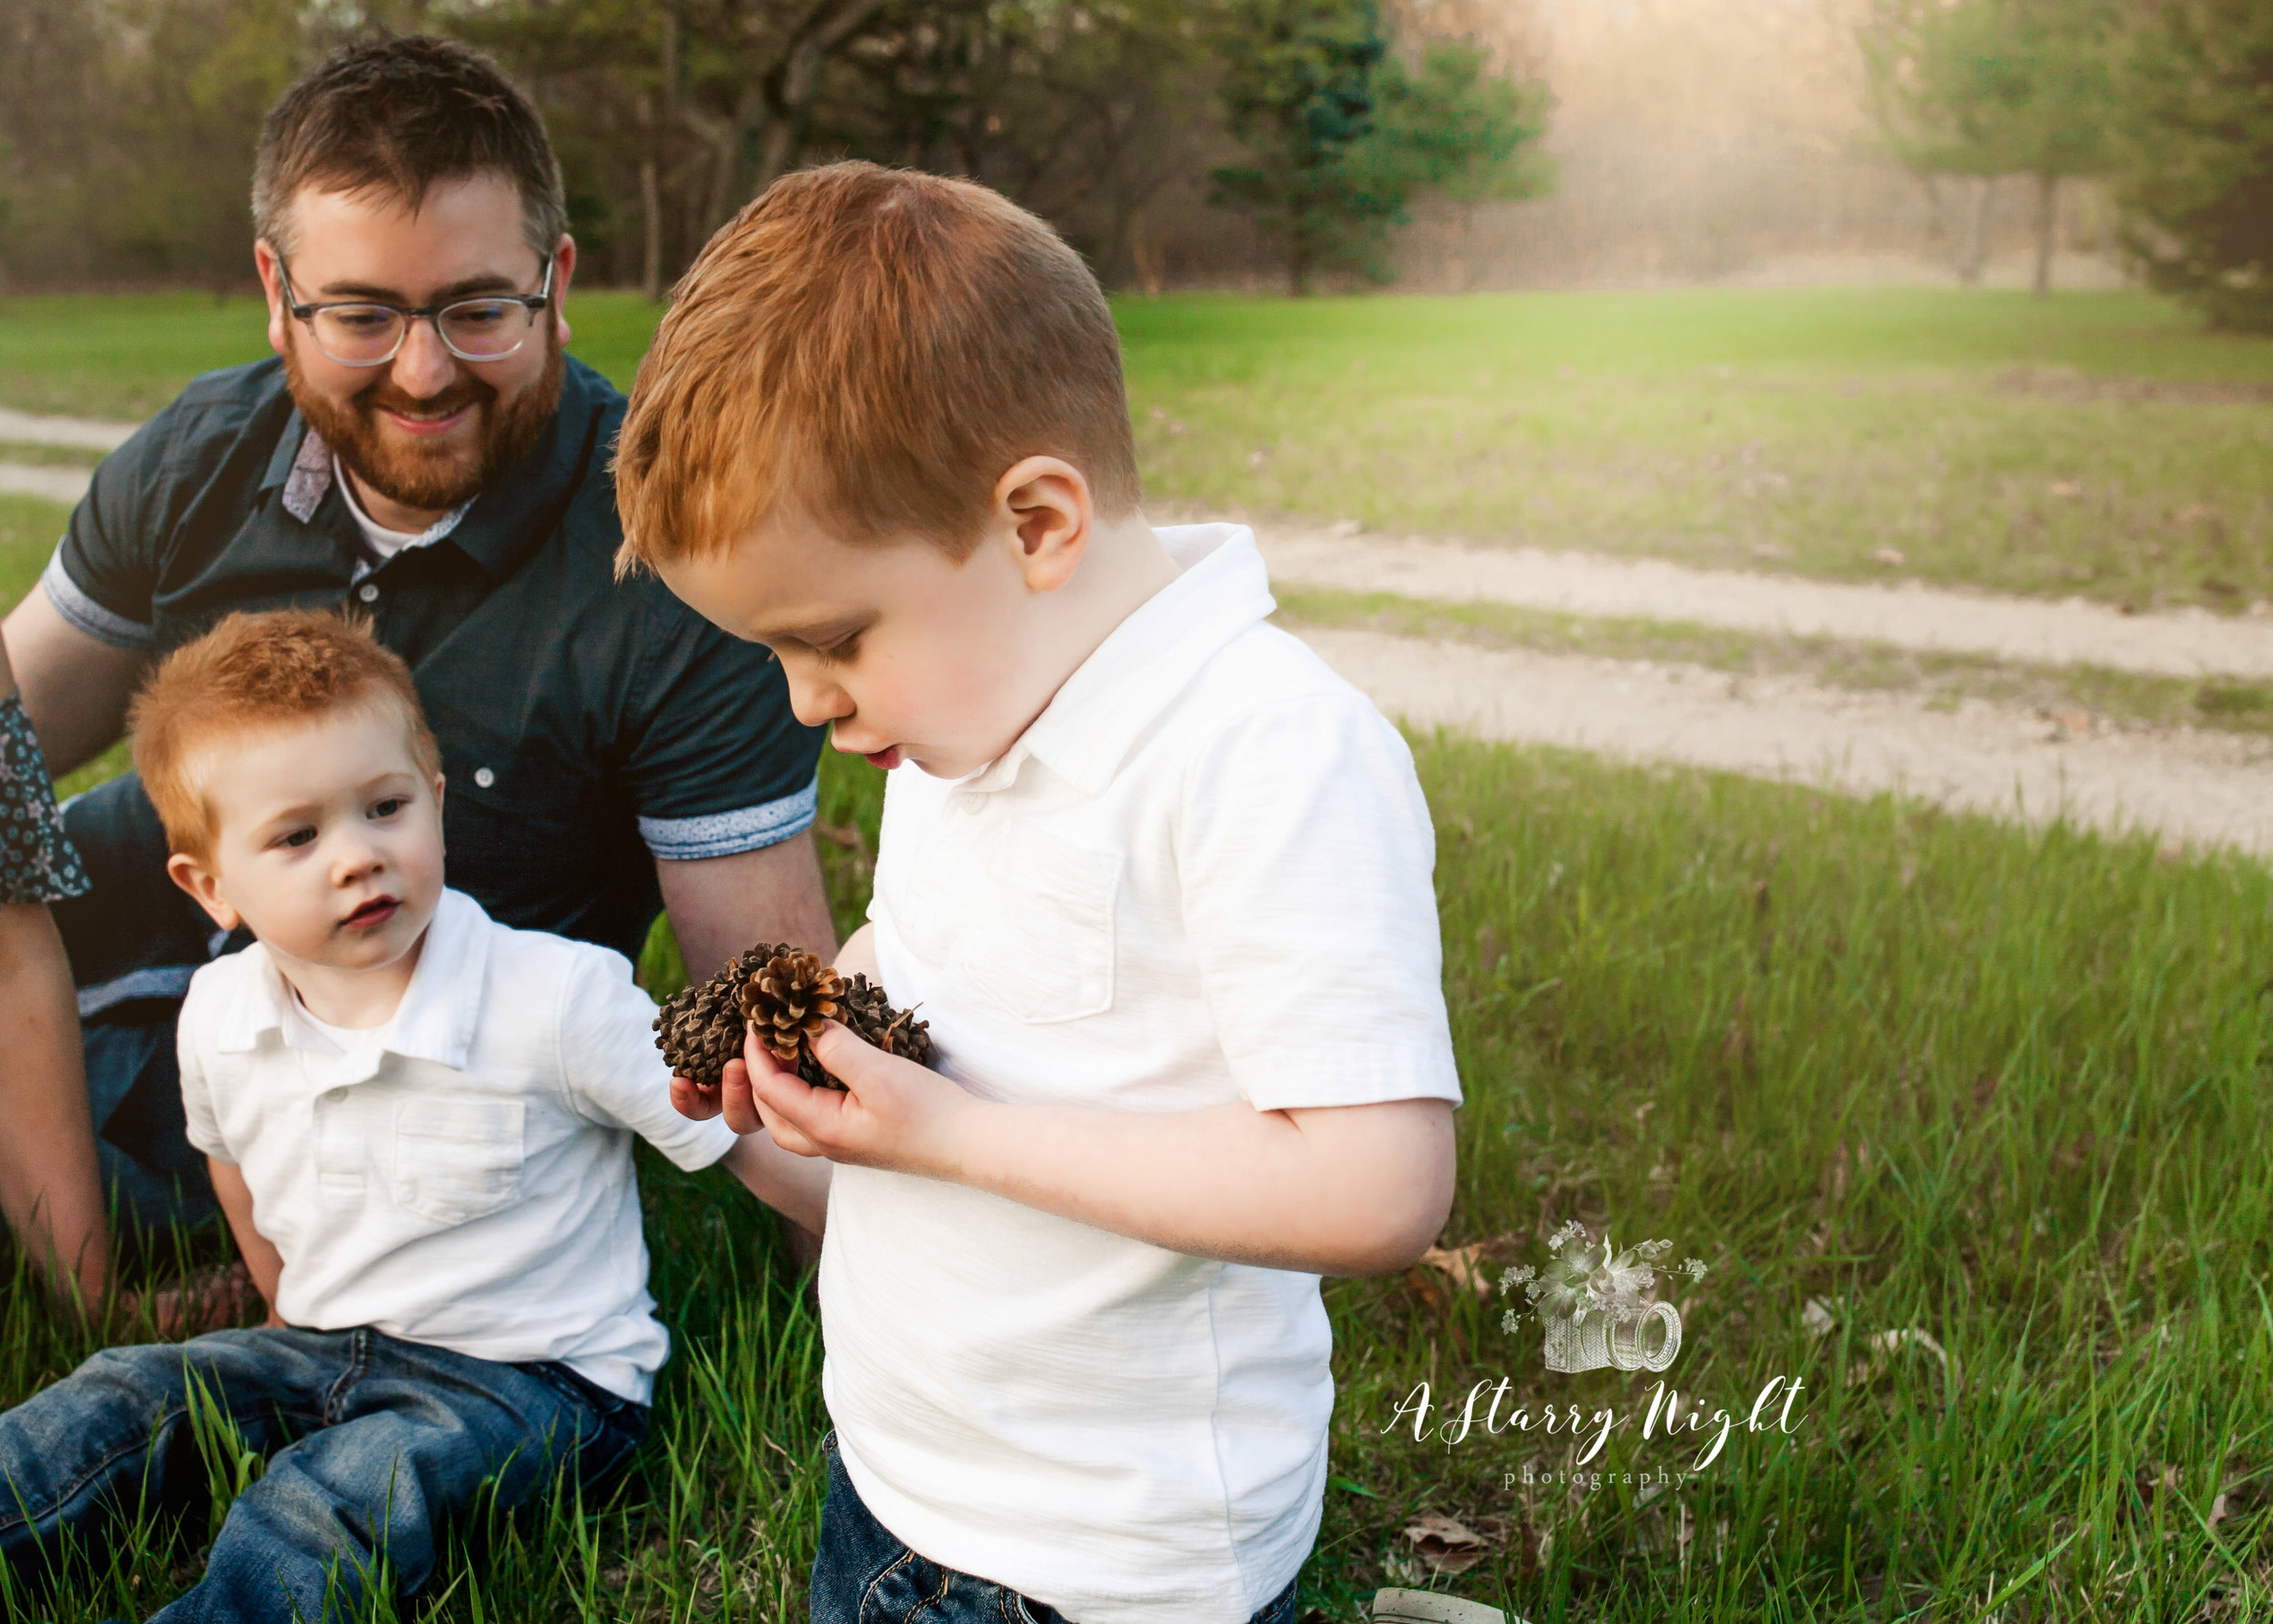 Clare-Daddy-Me-Michigan-Family-Photography5.jpg